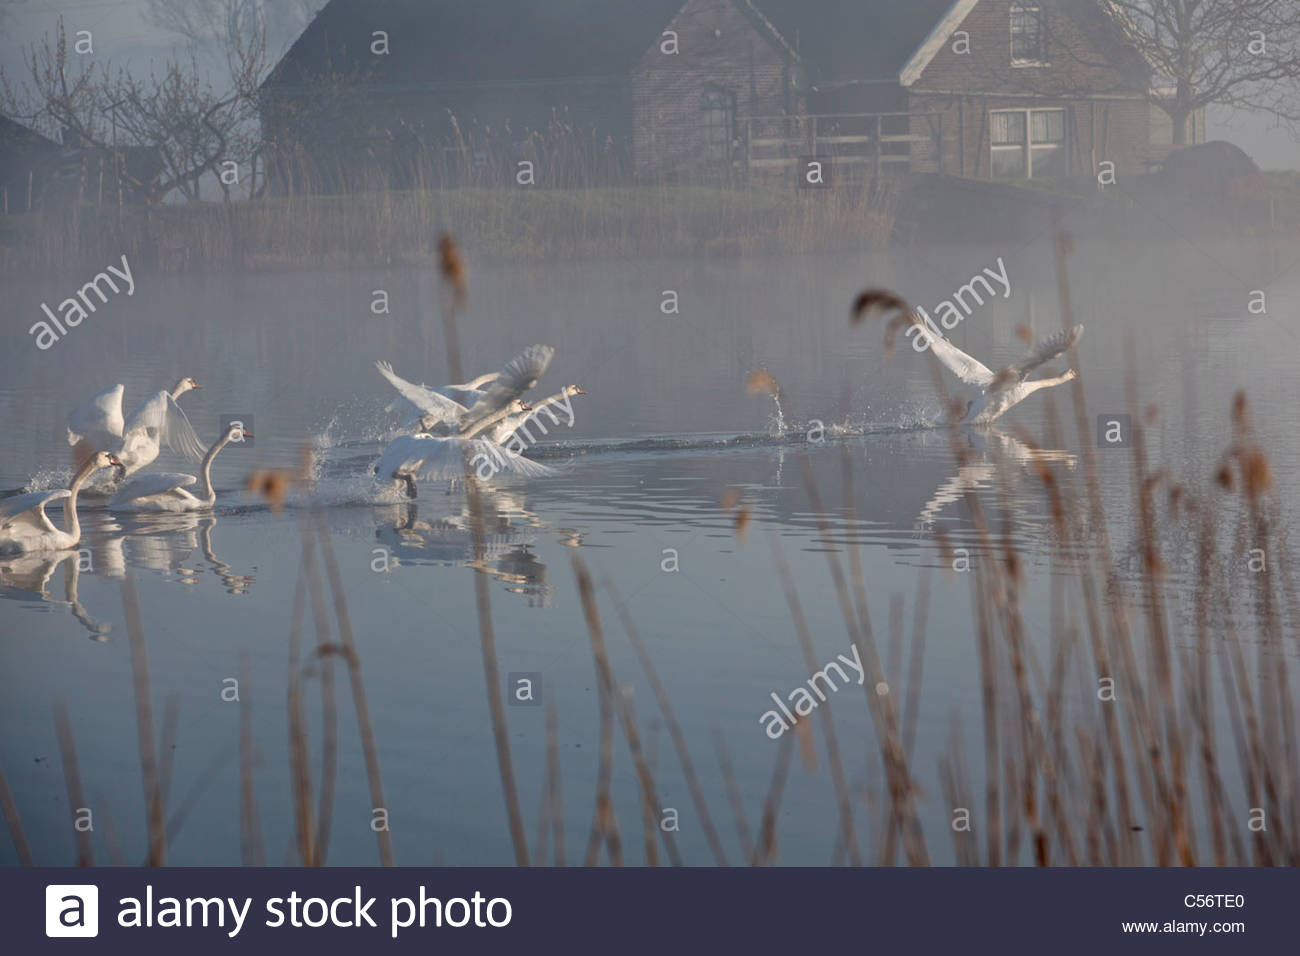 The Netherlands, Weesp, Farm in morningmist near river called Vecht. Mute swans taking off. - Stock Image